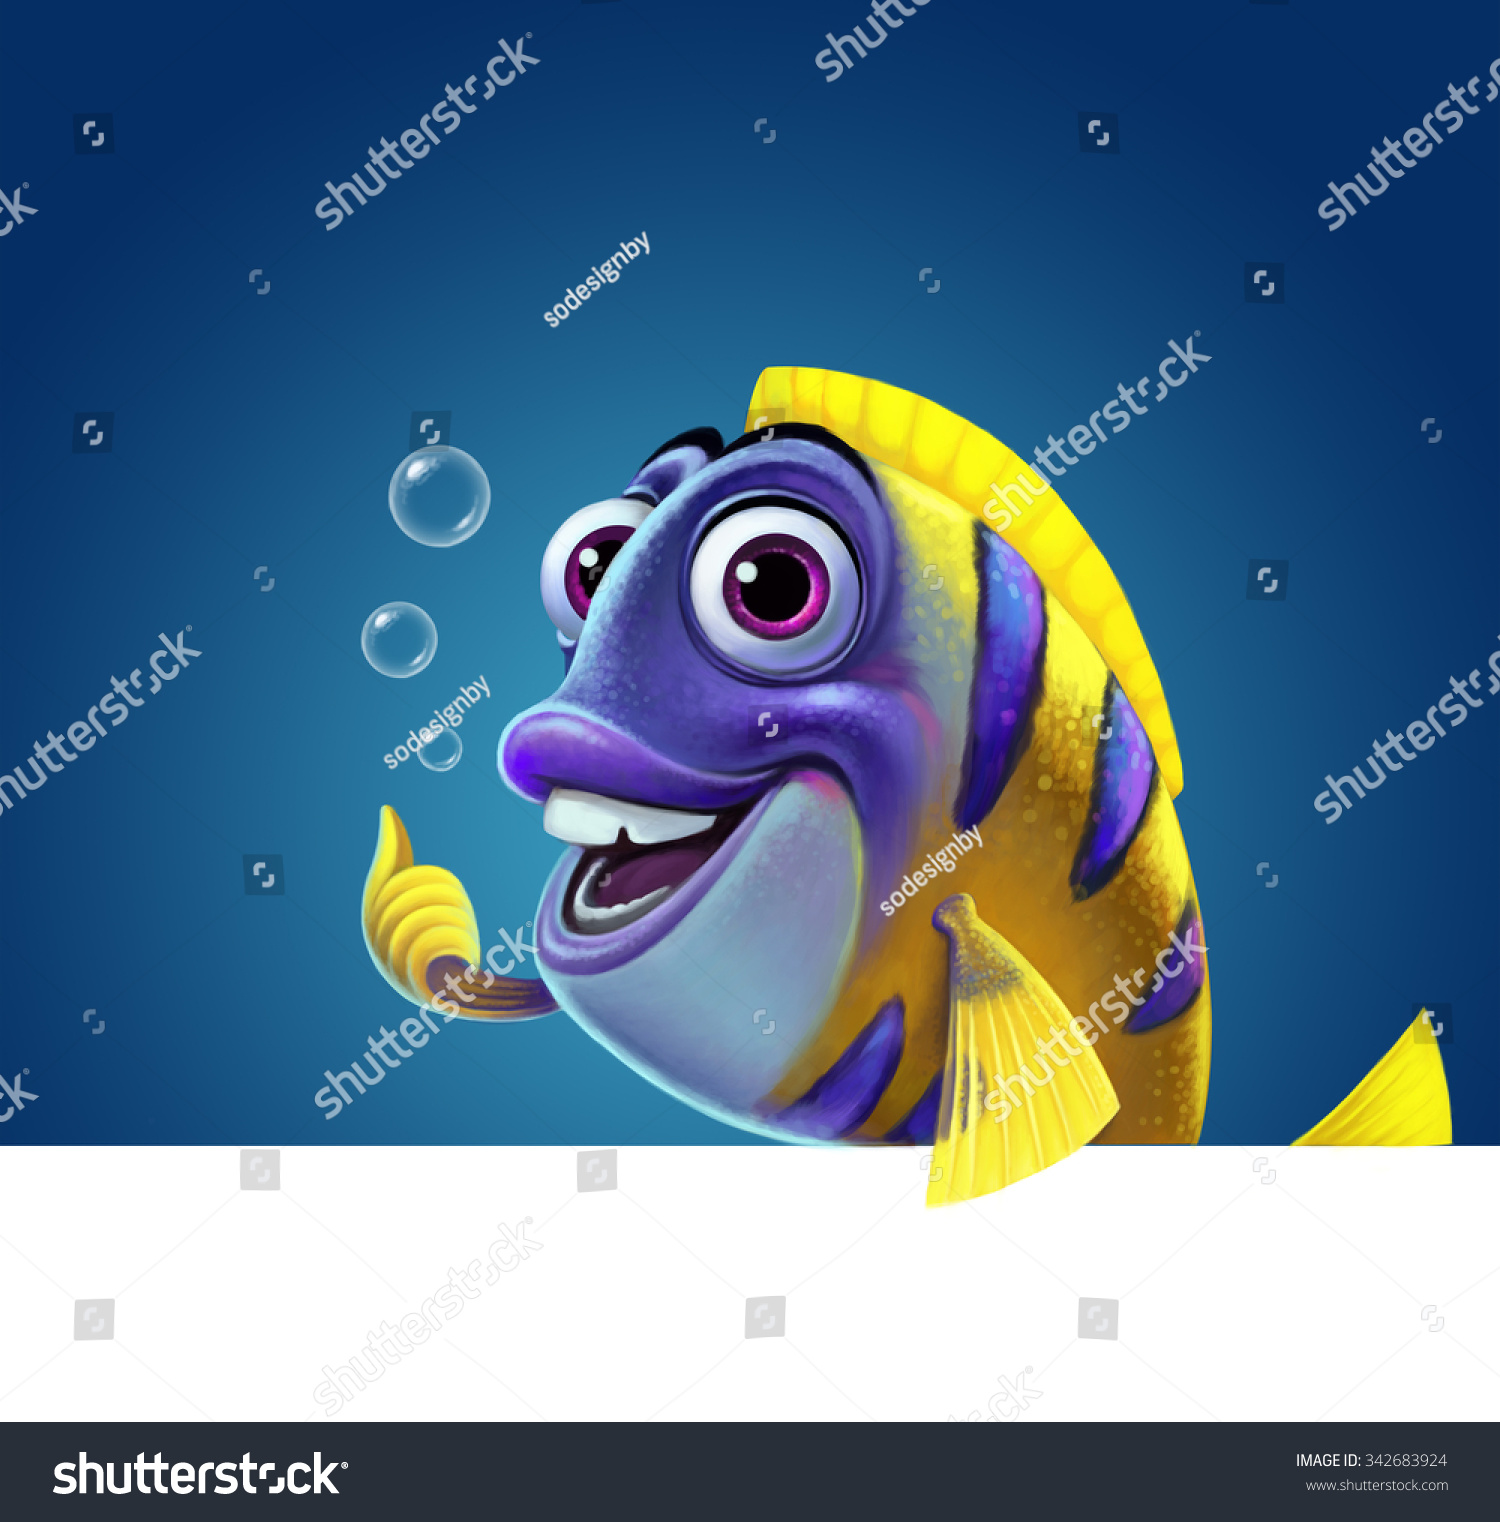 Illustration funny fish stock illustration 342683924 for Funny fishing songs